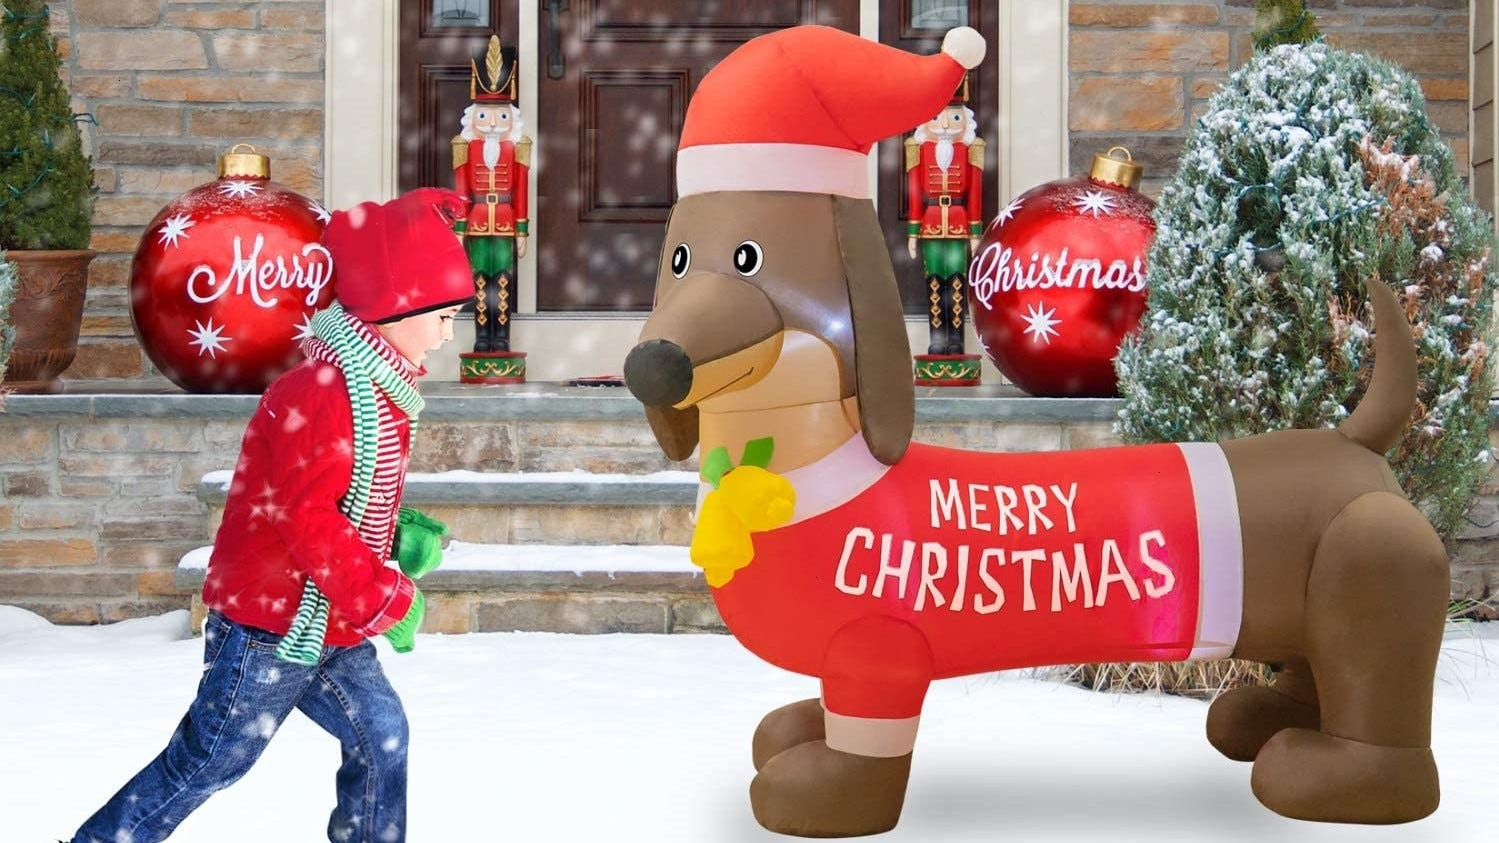 A child walking by an inflatable Christmas dog.